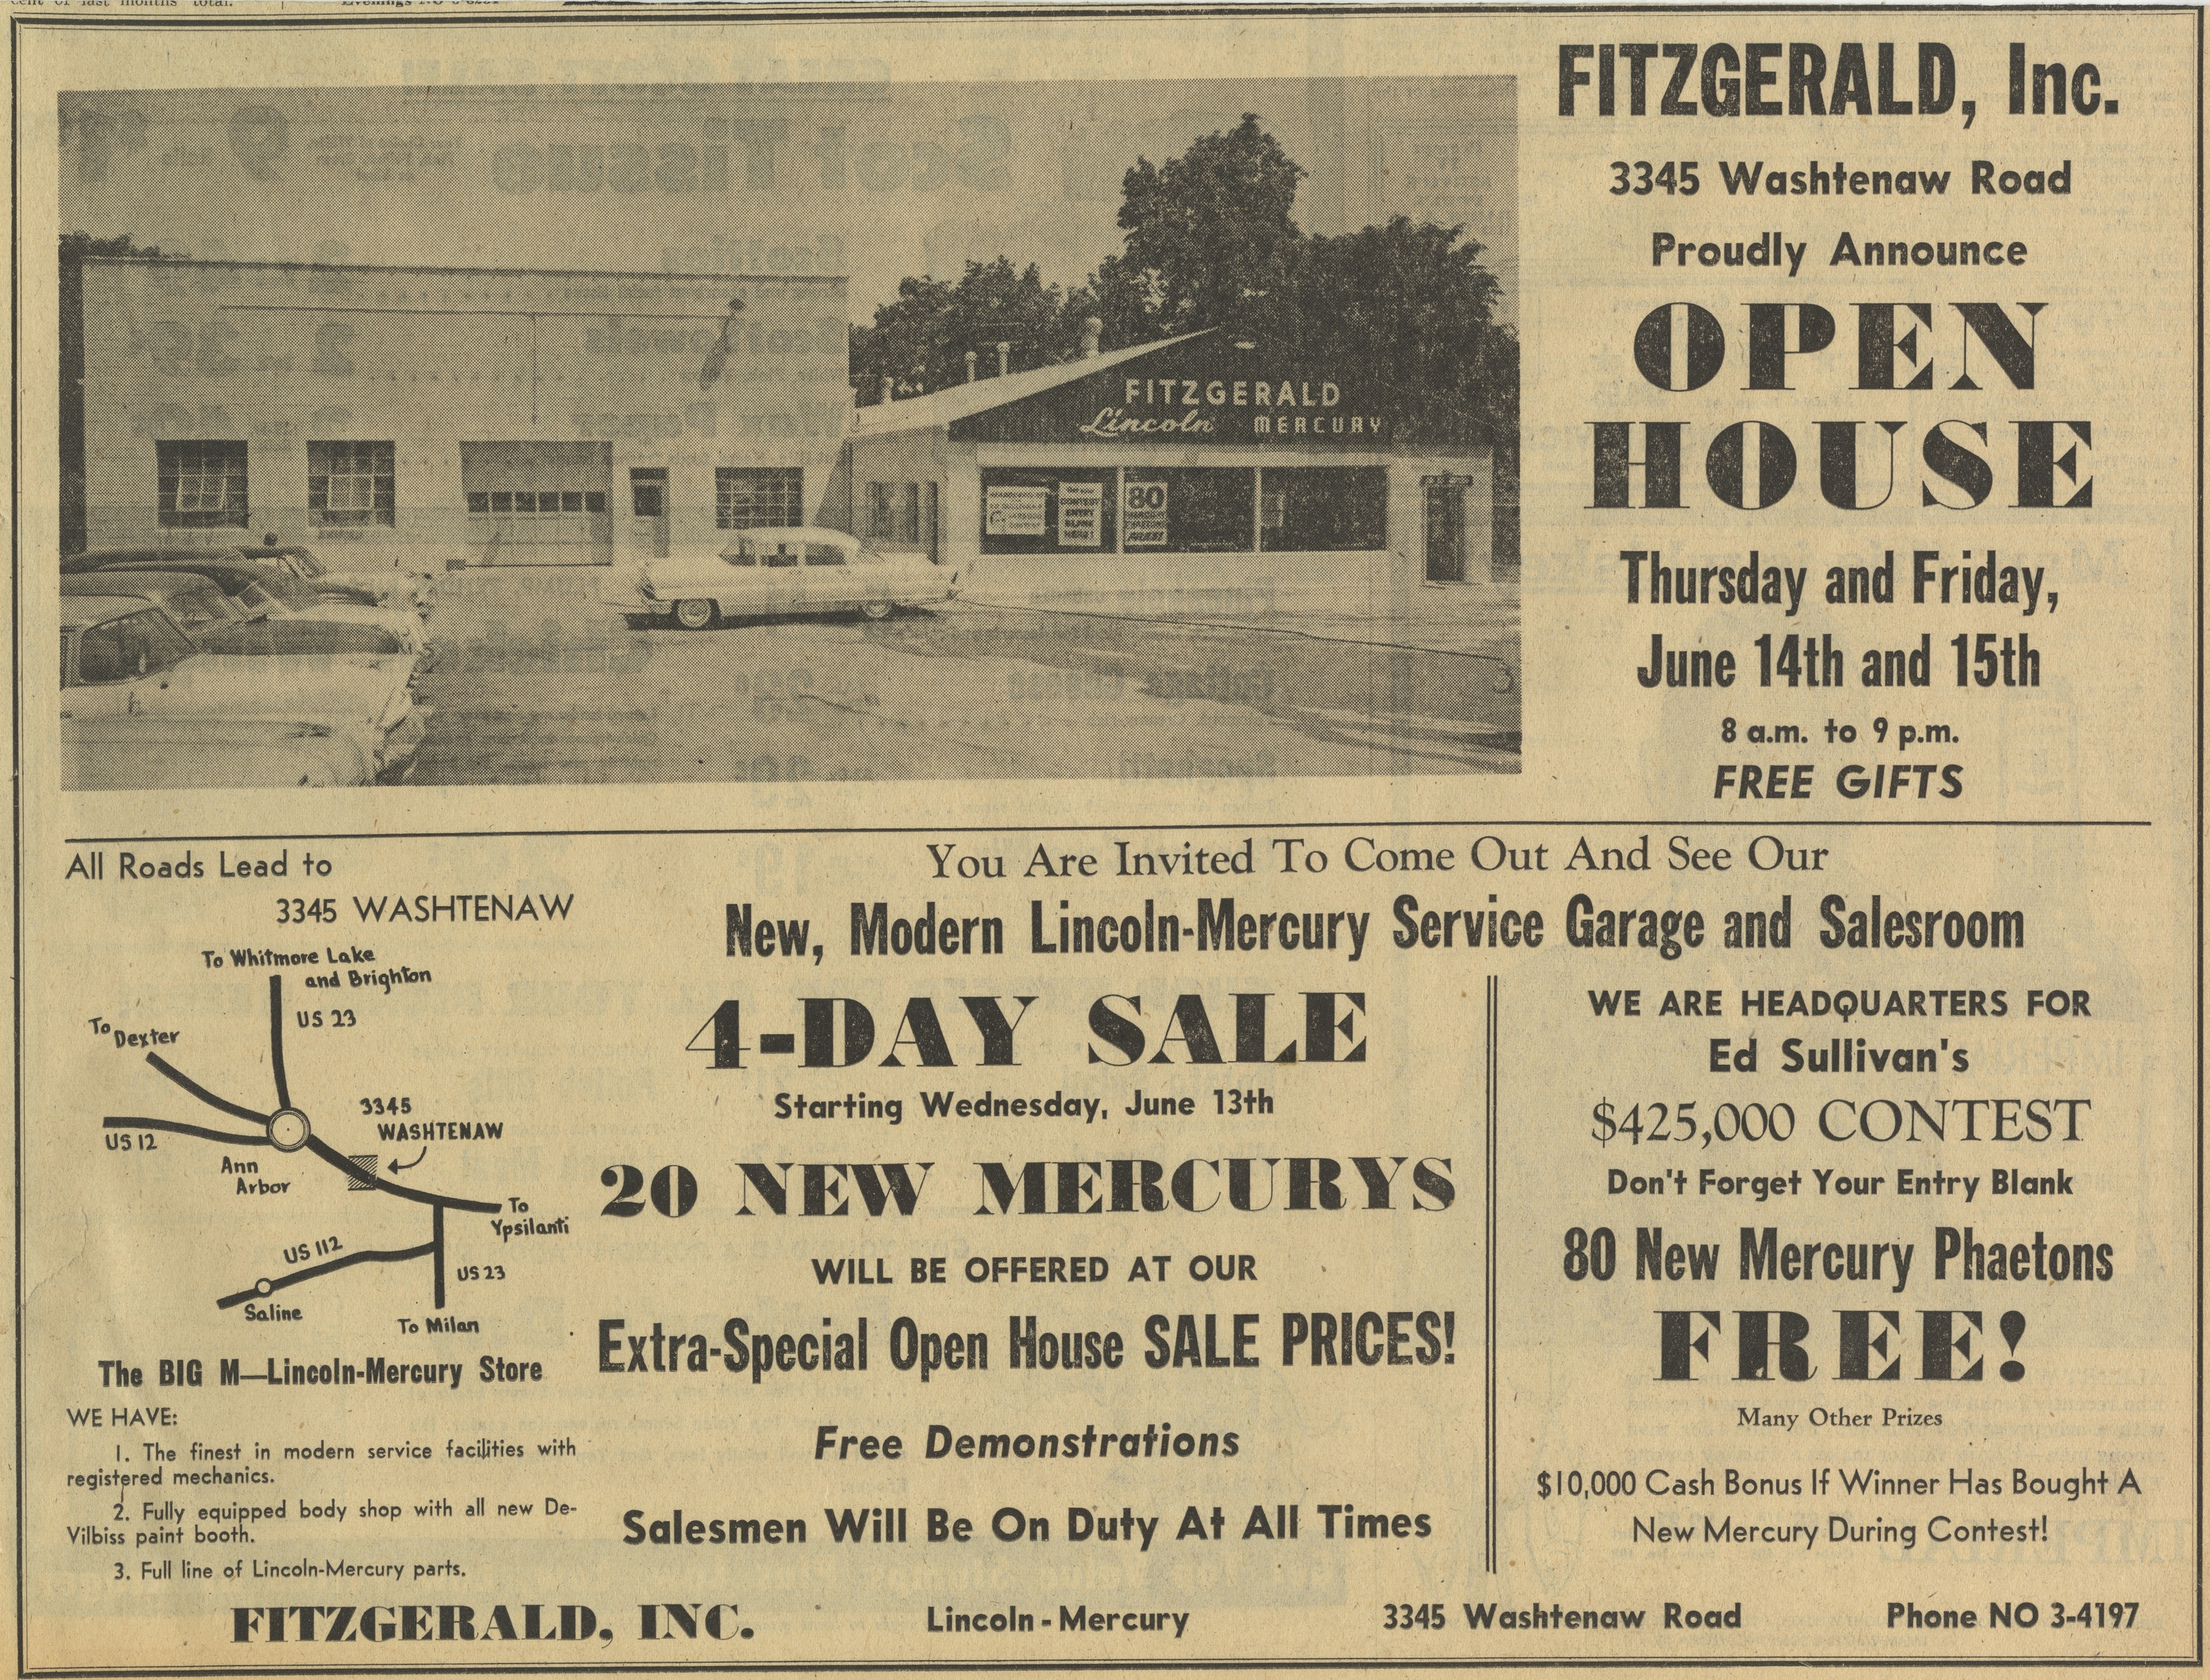 Fitzgerald, Inc Open House image